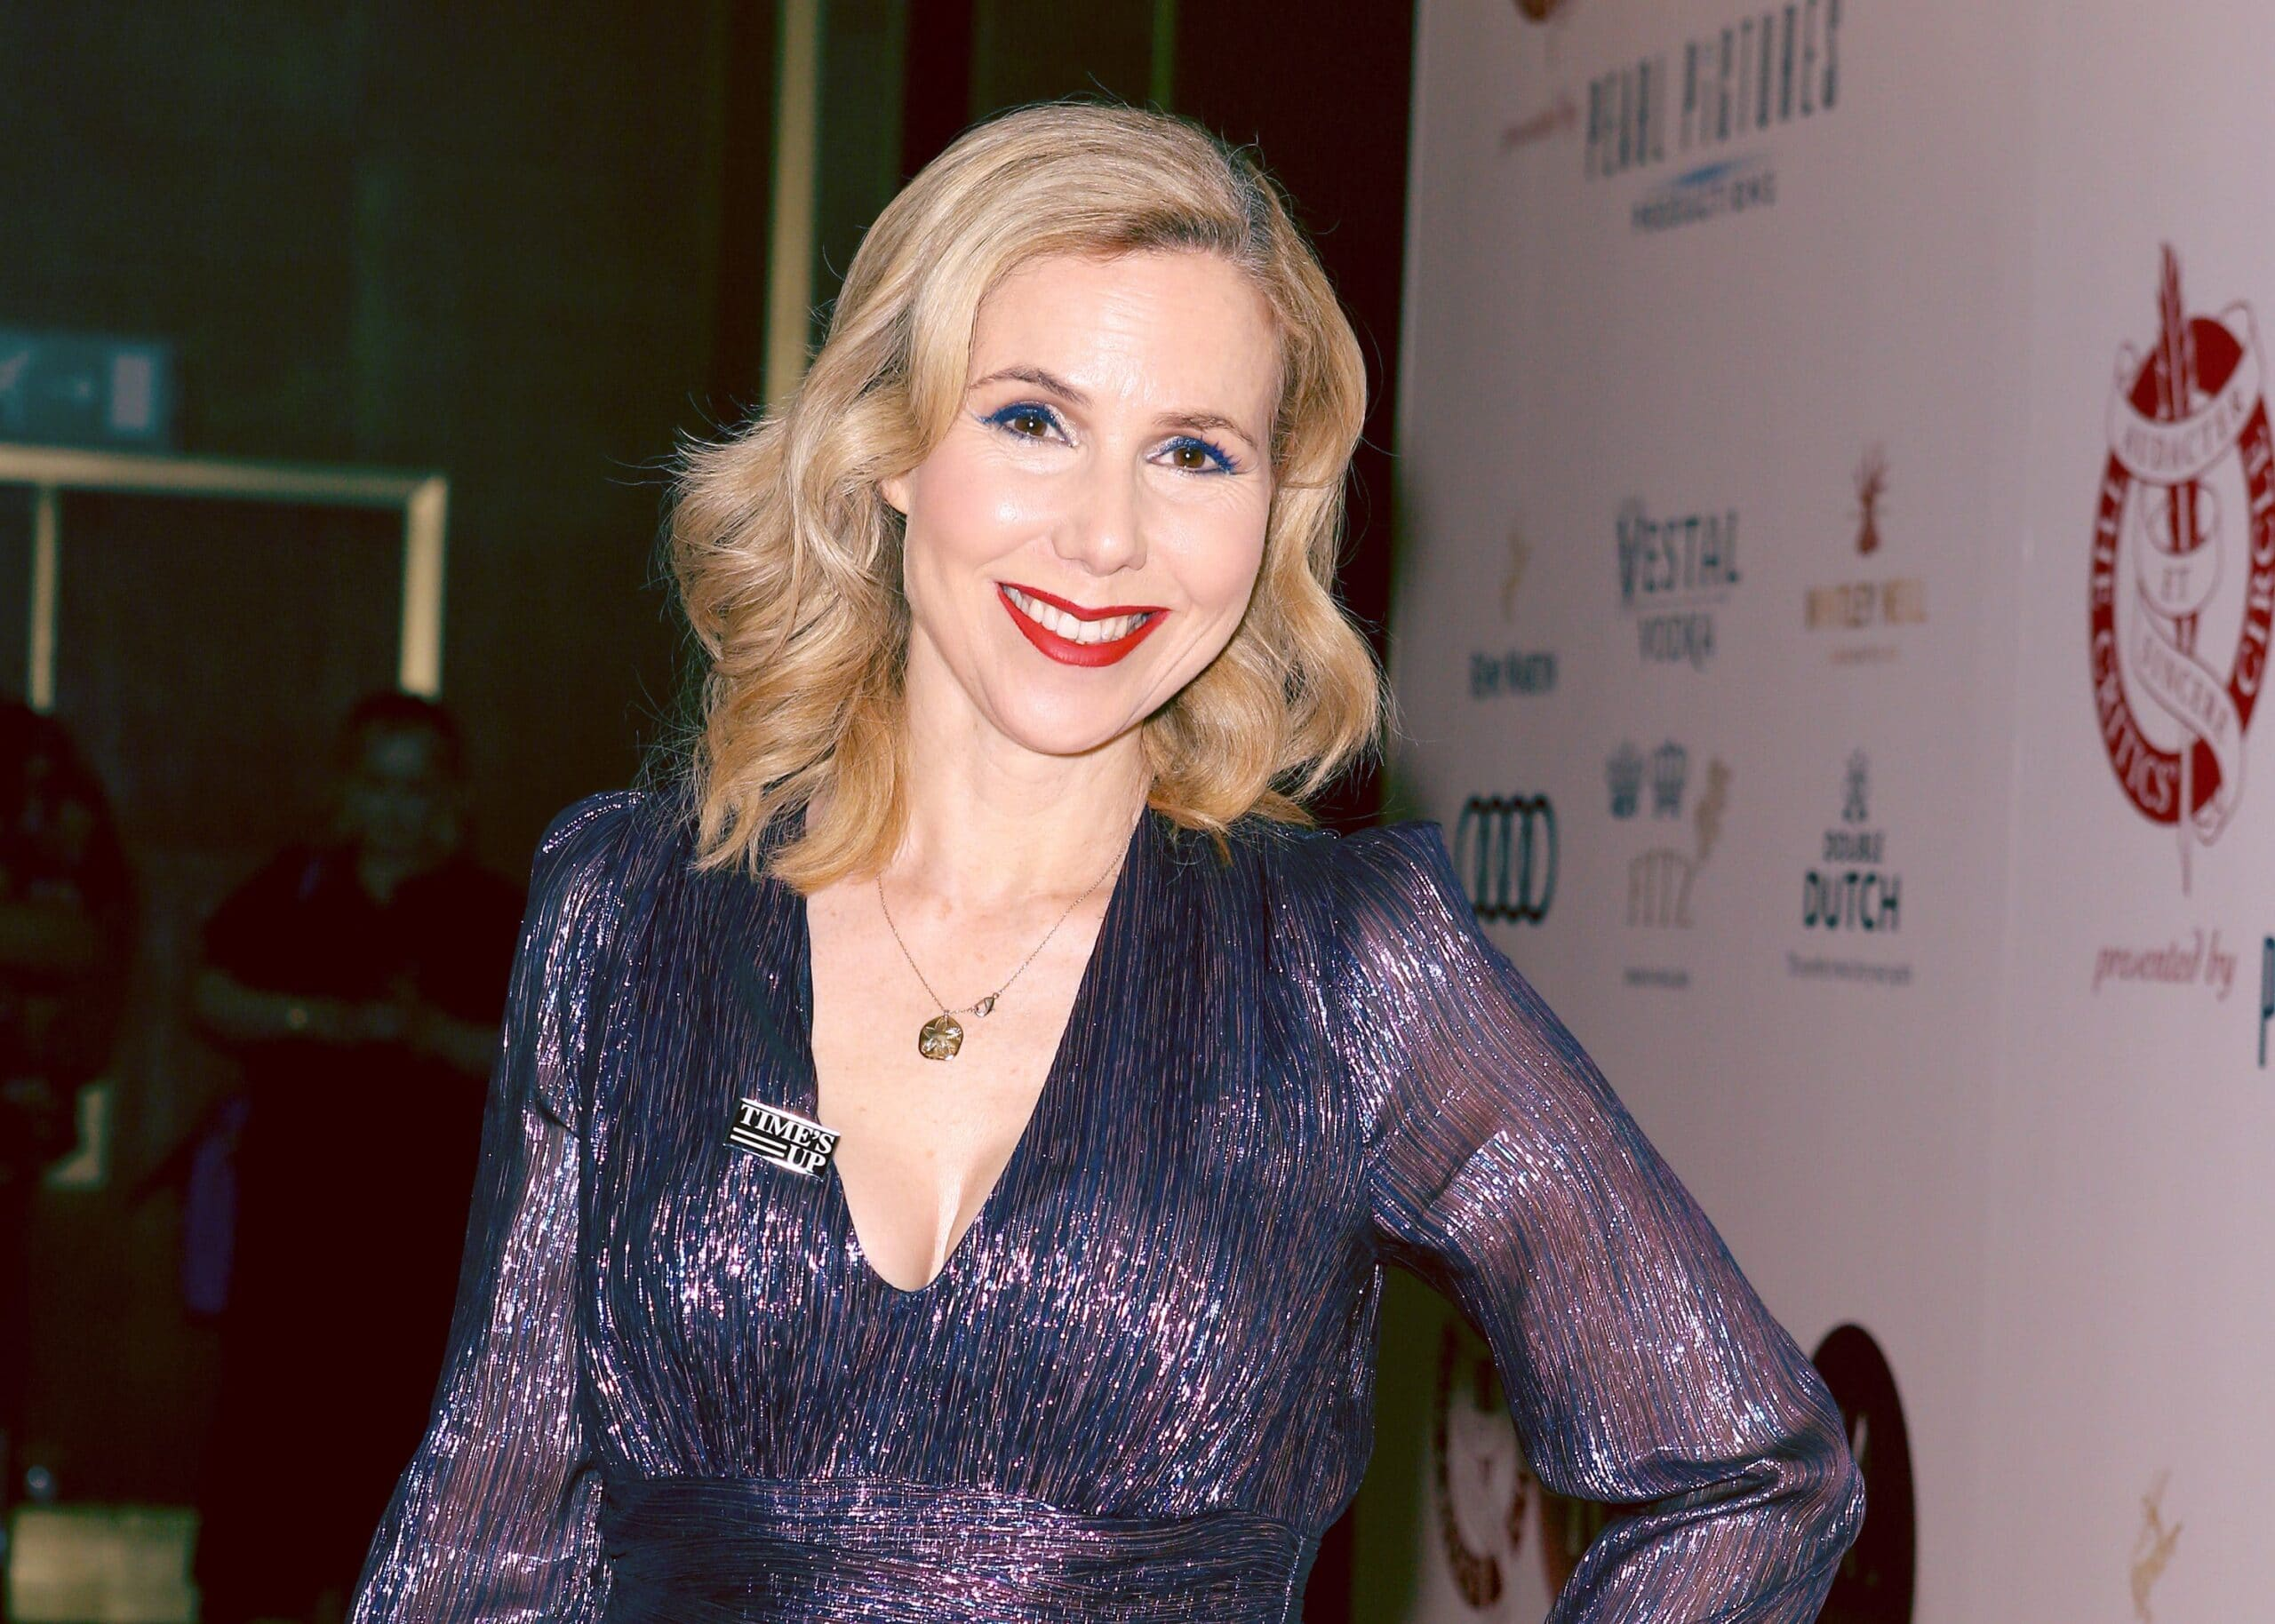 Sally Phillips interview